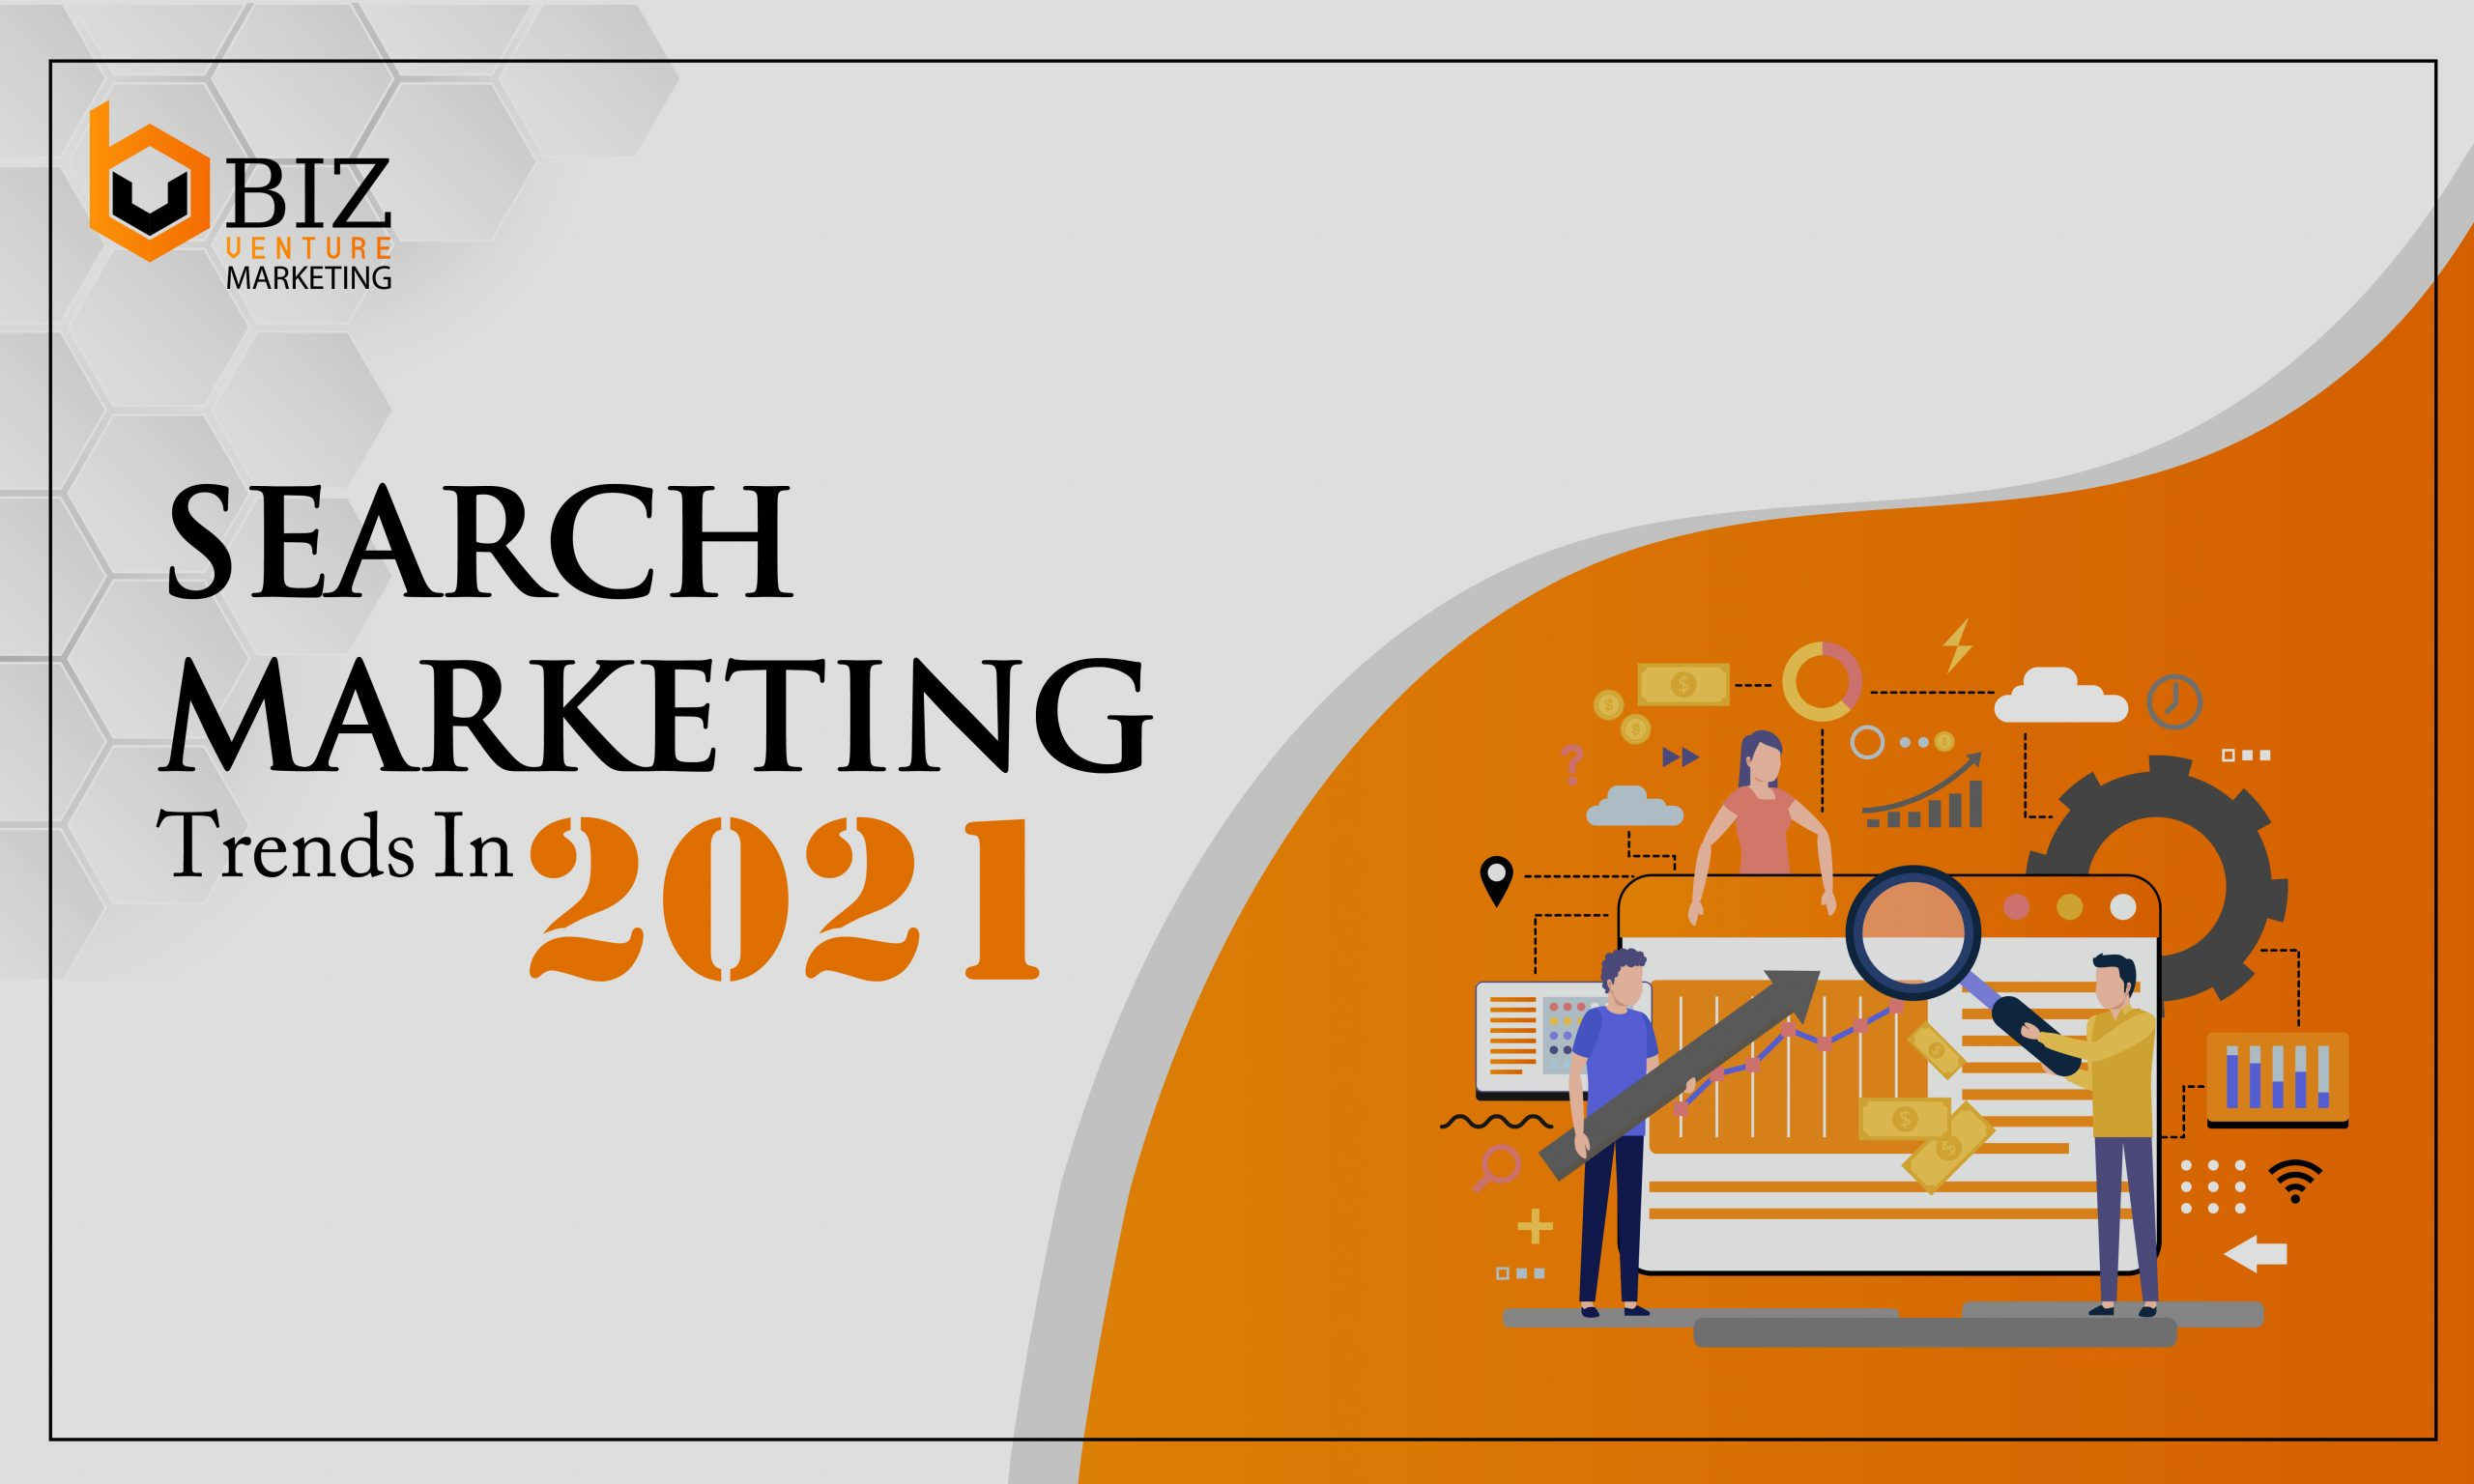 Search Marketing Tips in 2021